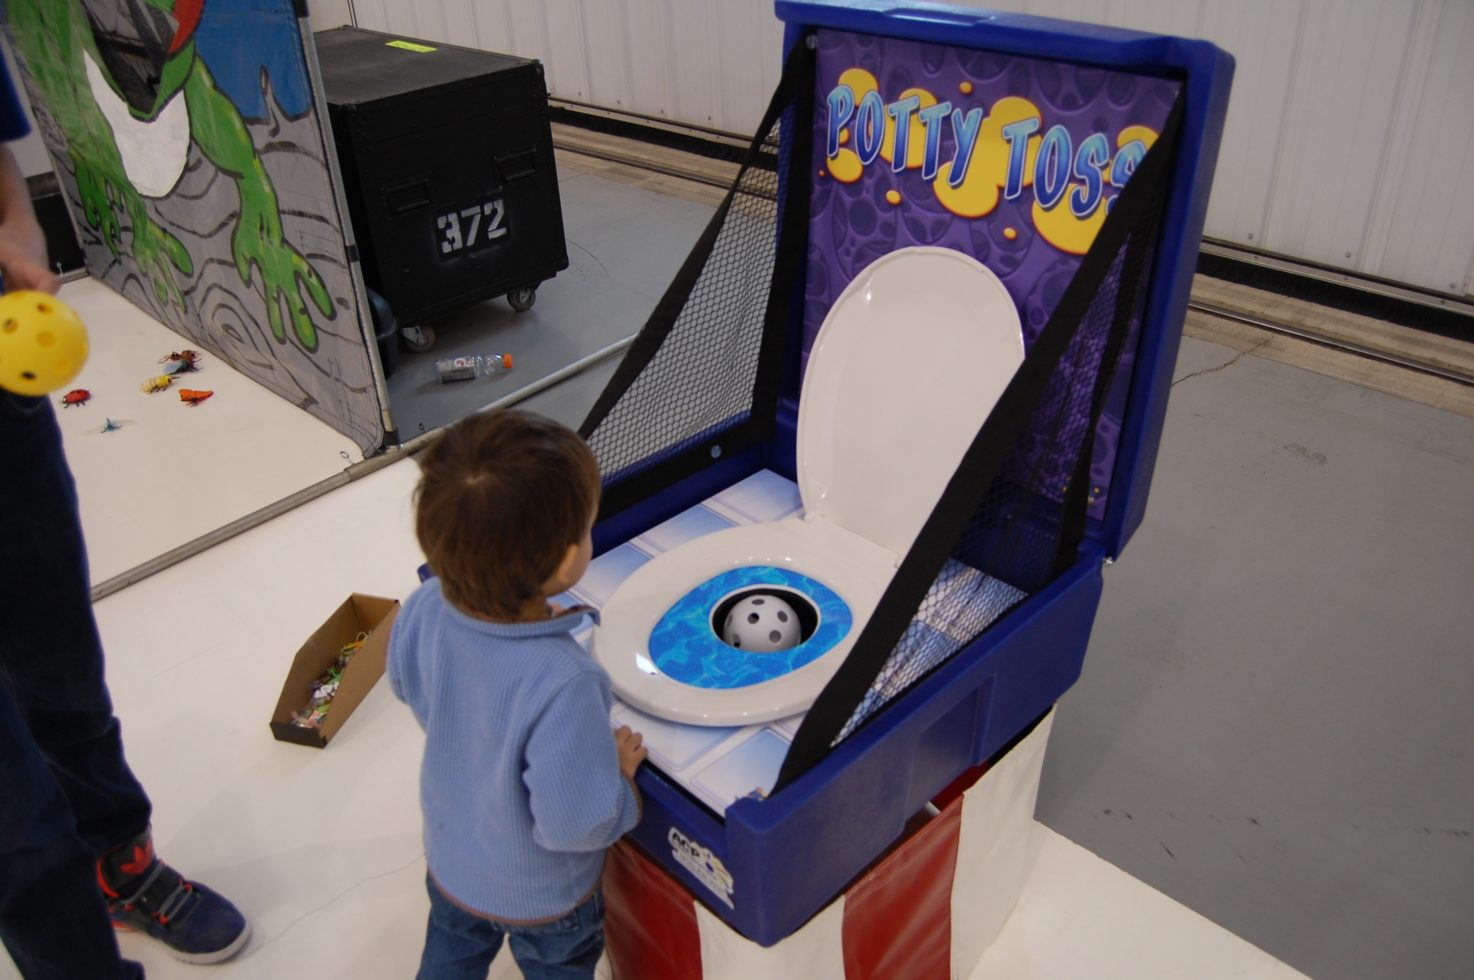 Boy playing potty toss carnival game